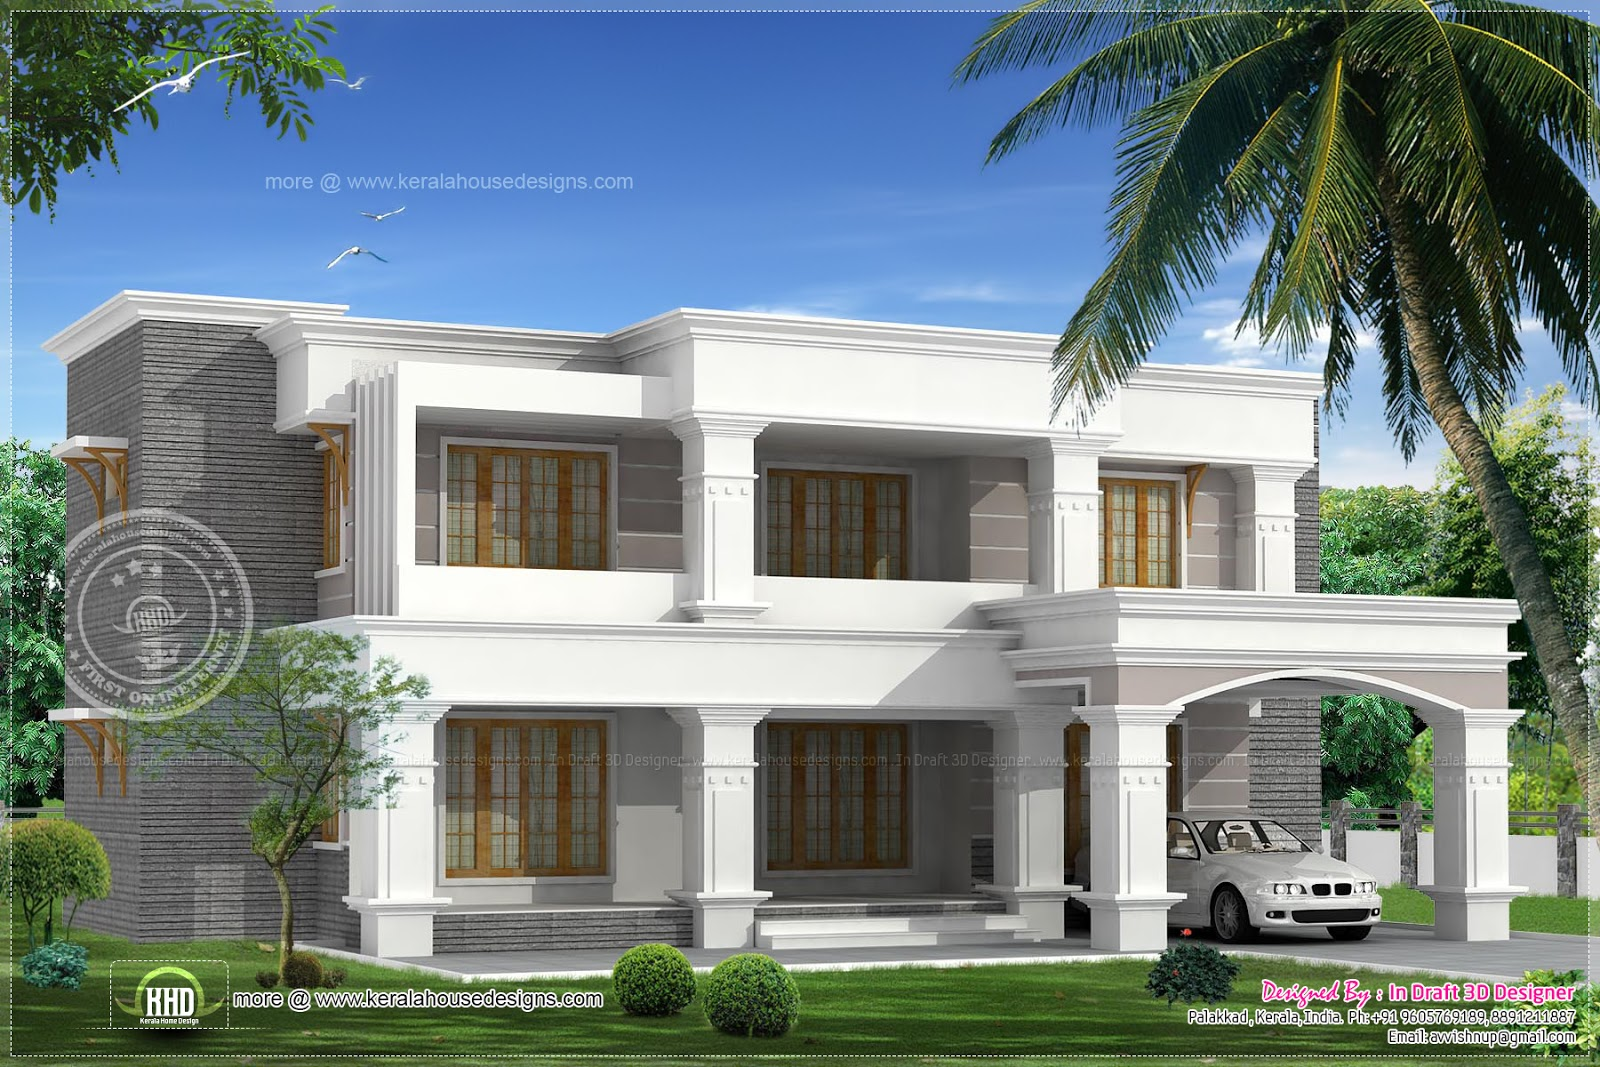 Two different elevations of a luxury 4 bed room villa Villa designs india